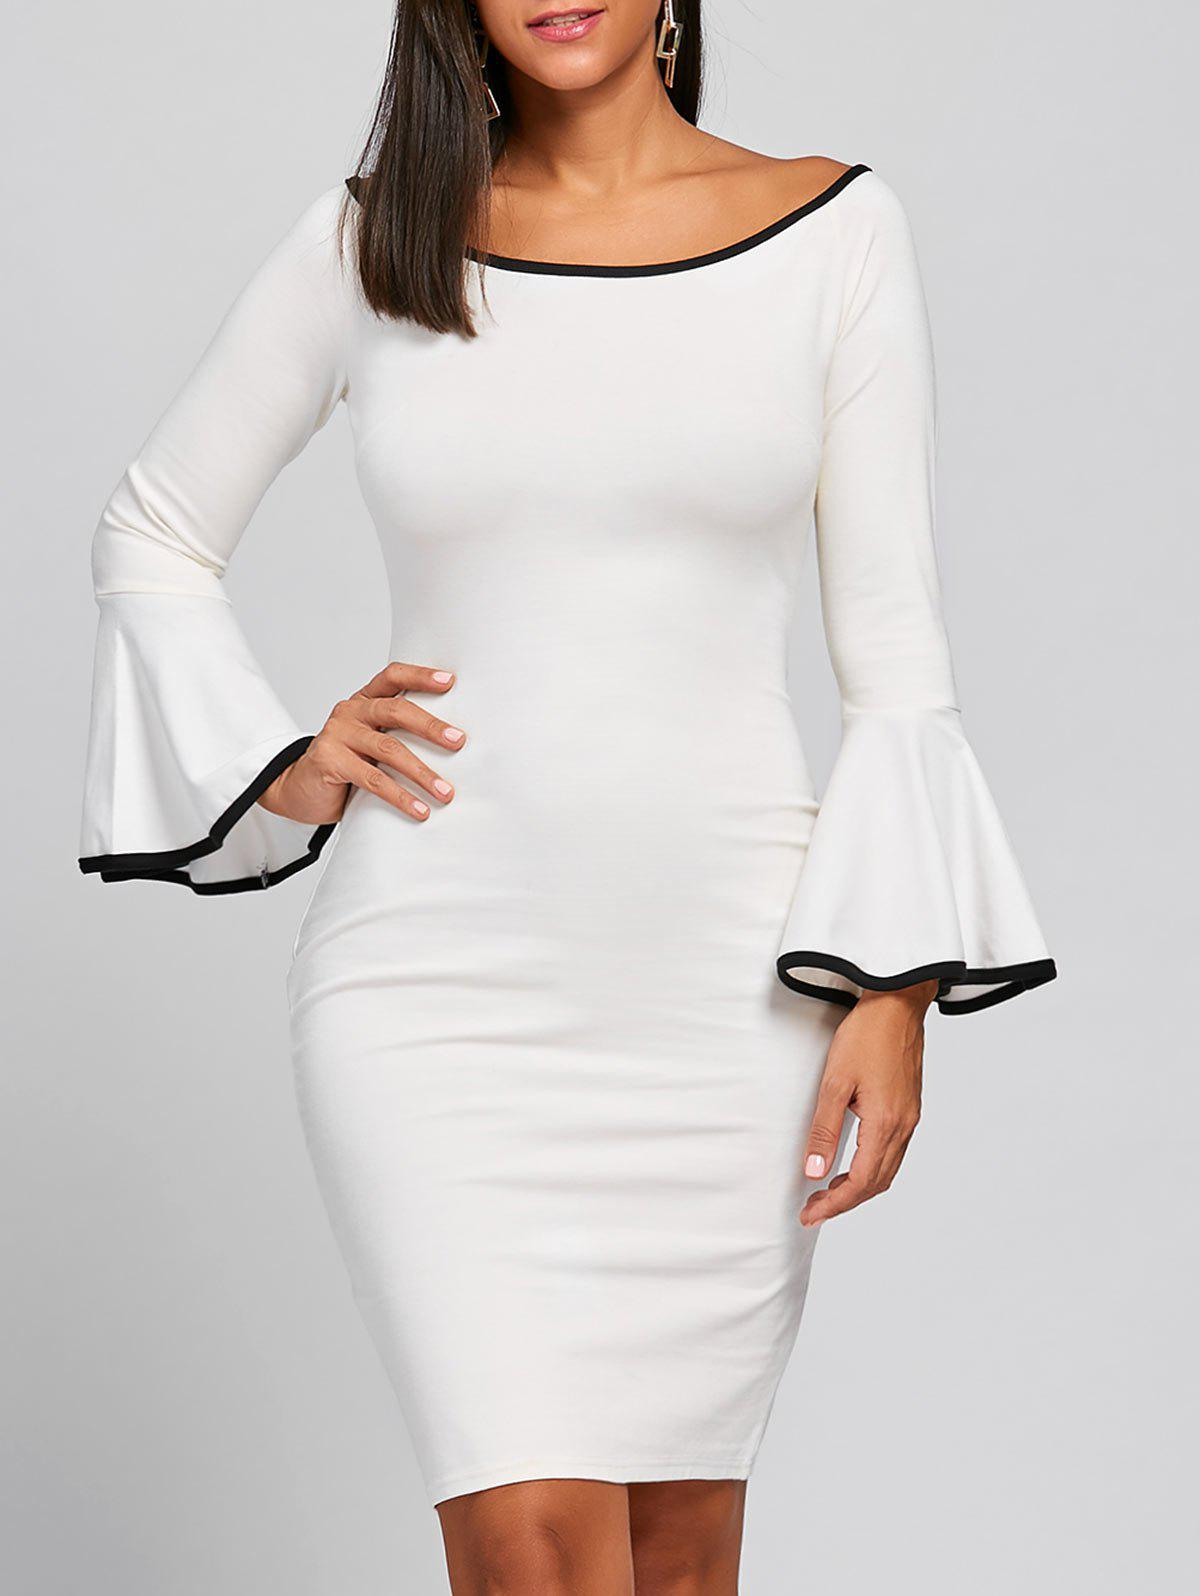 Boat Collar Bell Sleeve Bodycon DressWOMEN<br><br>Size: XL; Color: WHITE; Style: Gorgeous; Material: Polyester,Spandex; Silhouette: Bodycon; Dresses Length: Knee-Length; Neckline: Boat Neck; Sleeve Length: Long Sleeves; Pattern Type: Solid Color; With Belt: No; Season: Fall,Spring; Weight: 0.4000kg; Package Contents: 1 x Dress;